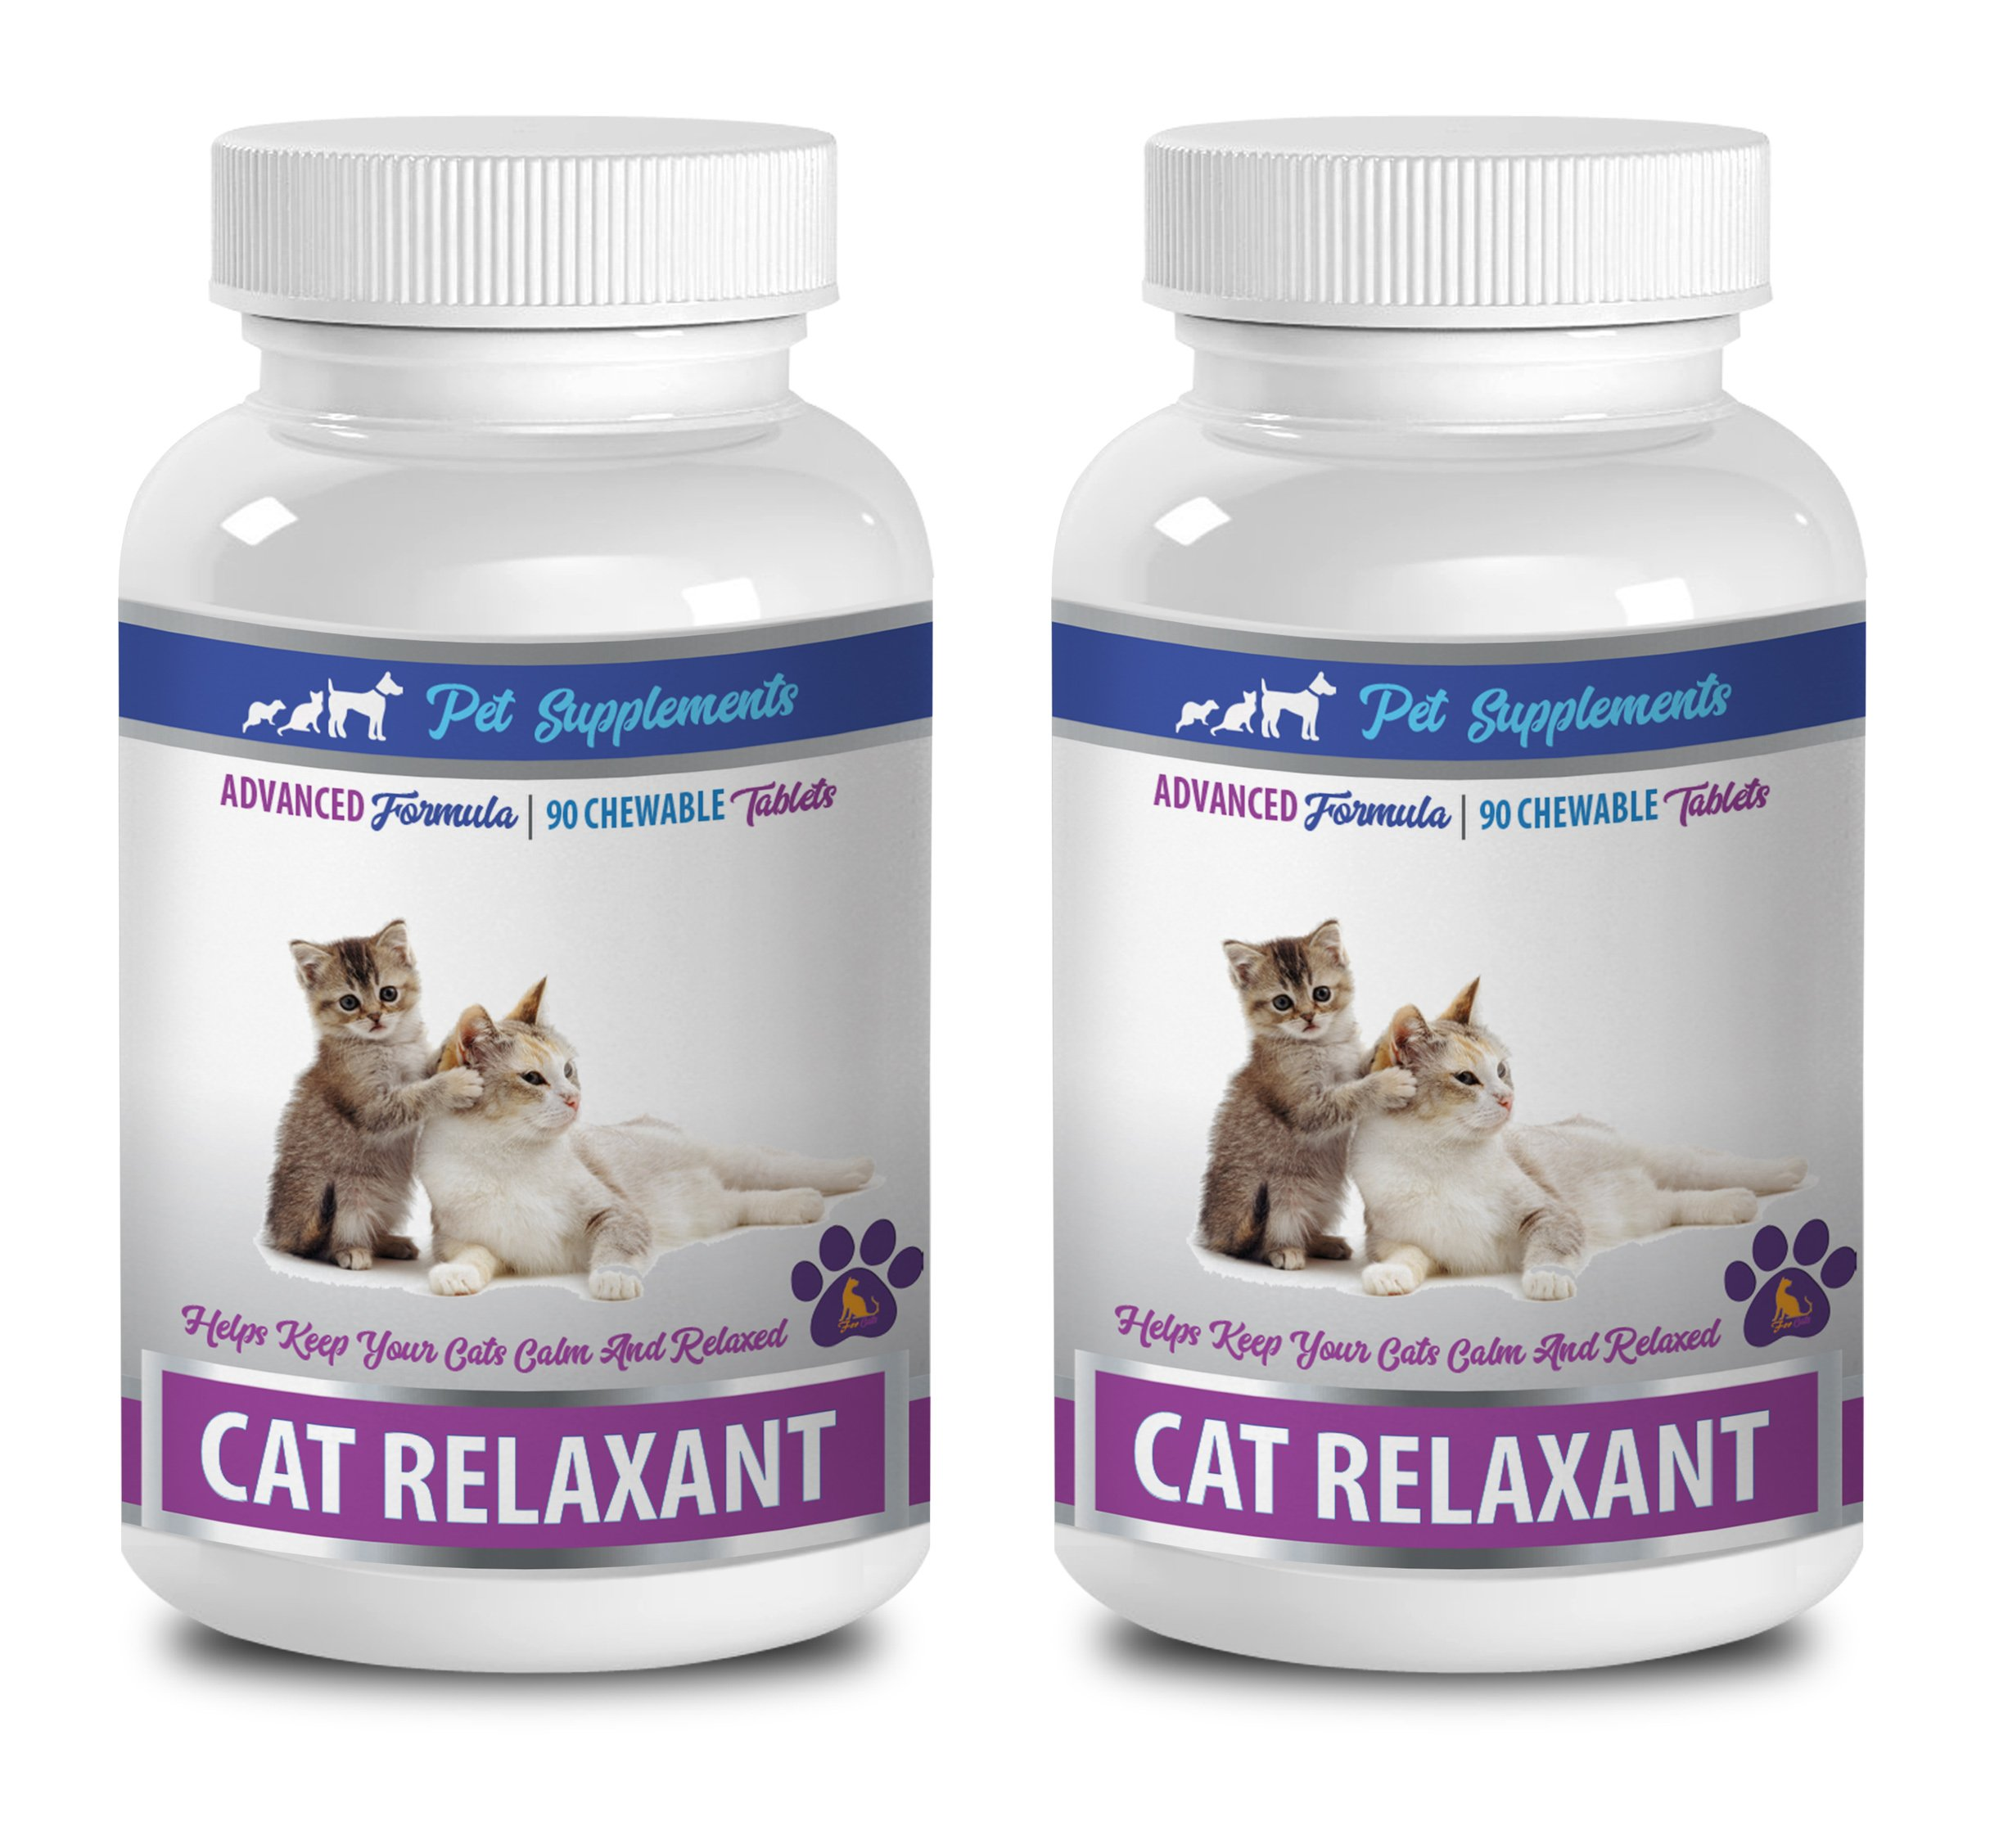 PET SUPPLEMENTS cat anxiety relief for travel - CAT RELAXANT - KEEPS CATS CALM AND RELAXED - CHEWABLE TREATS - valerian root for cats - 2 Bottle (180 Chews)